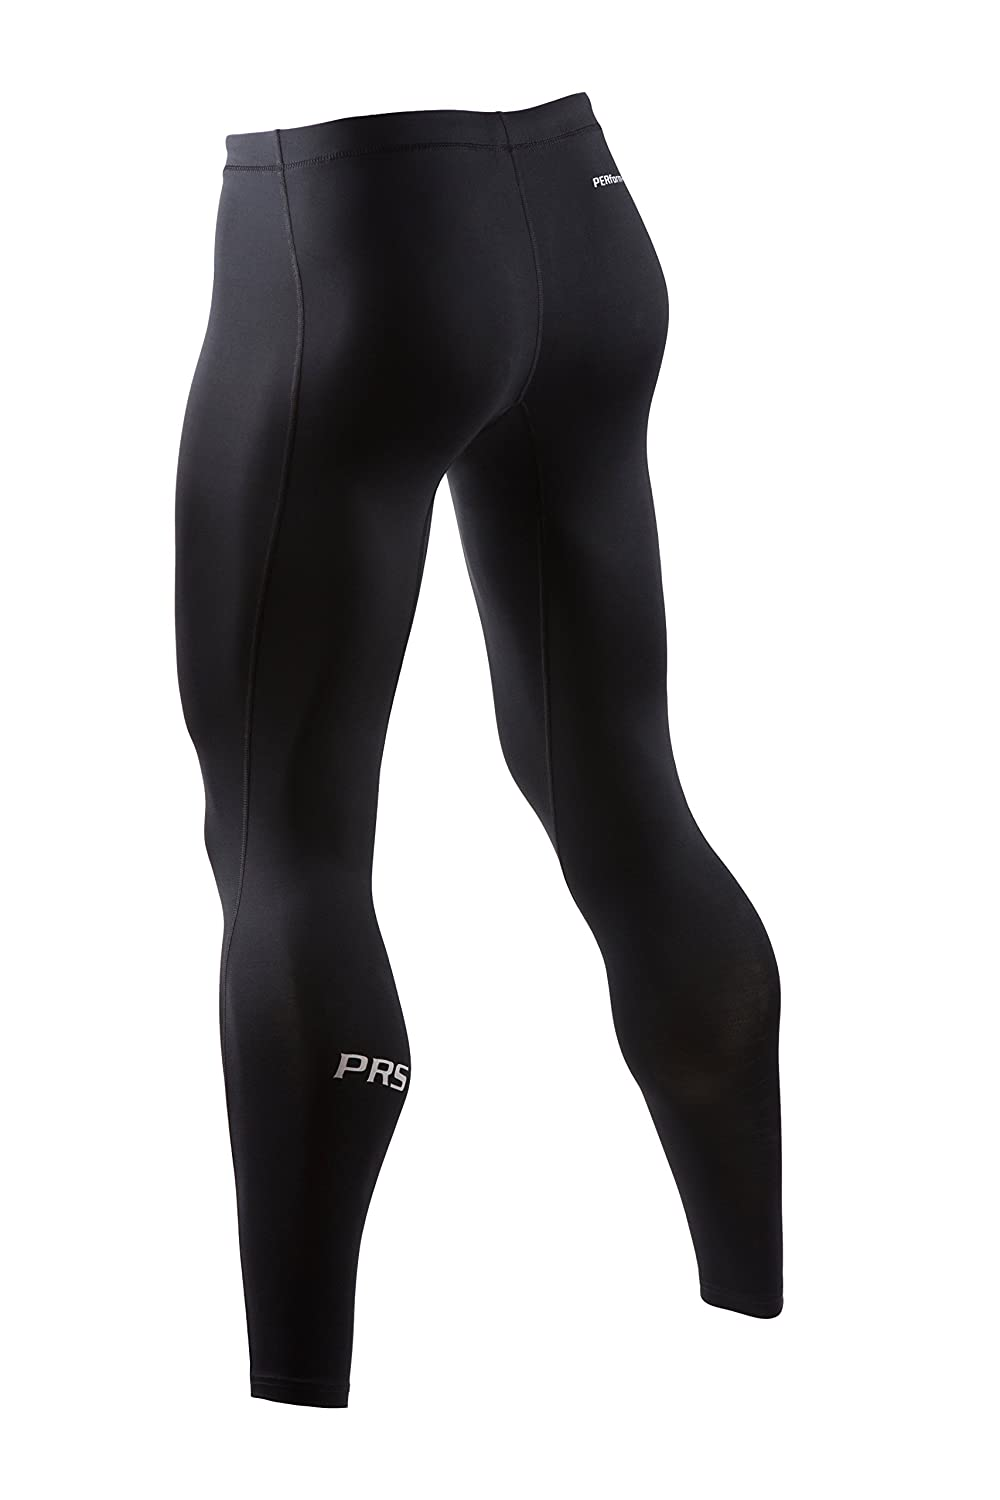 c8b6a872a2628 Amazon.com: PRS Men's Perform+ Compression Tights for Running, Crossfit,  HIIT, Yoga, Gym: Clothing